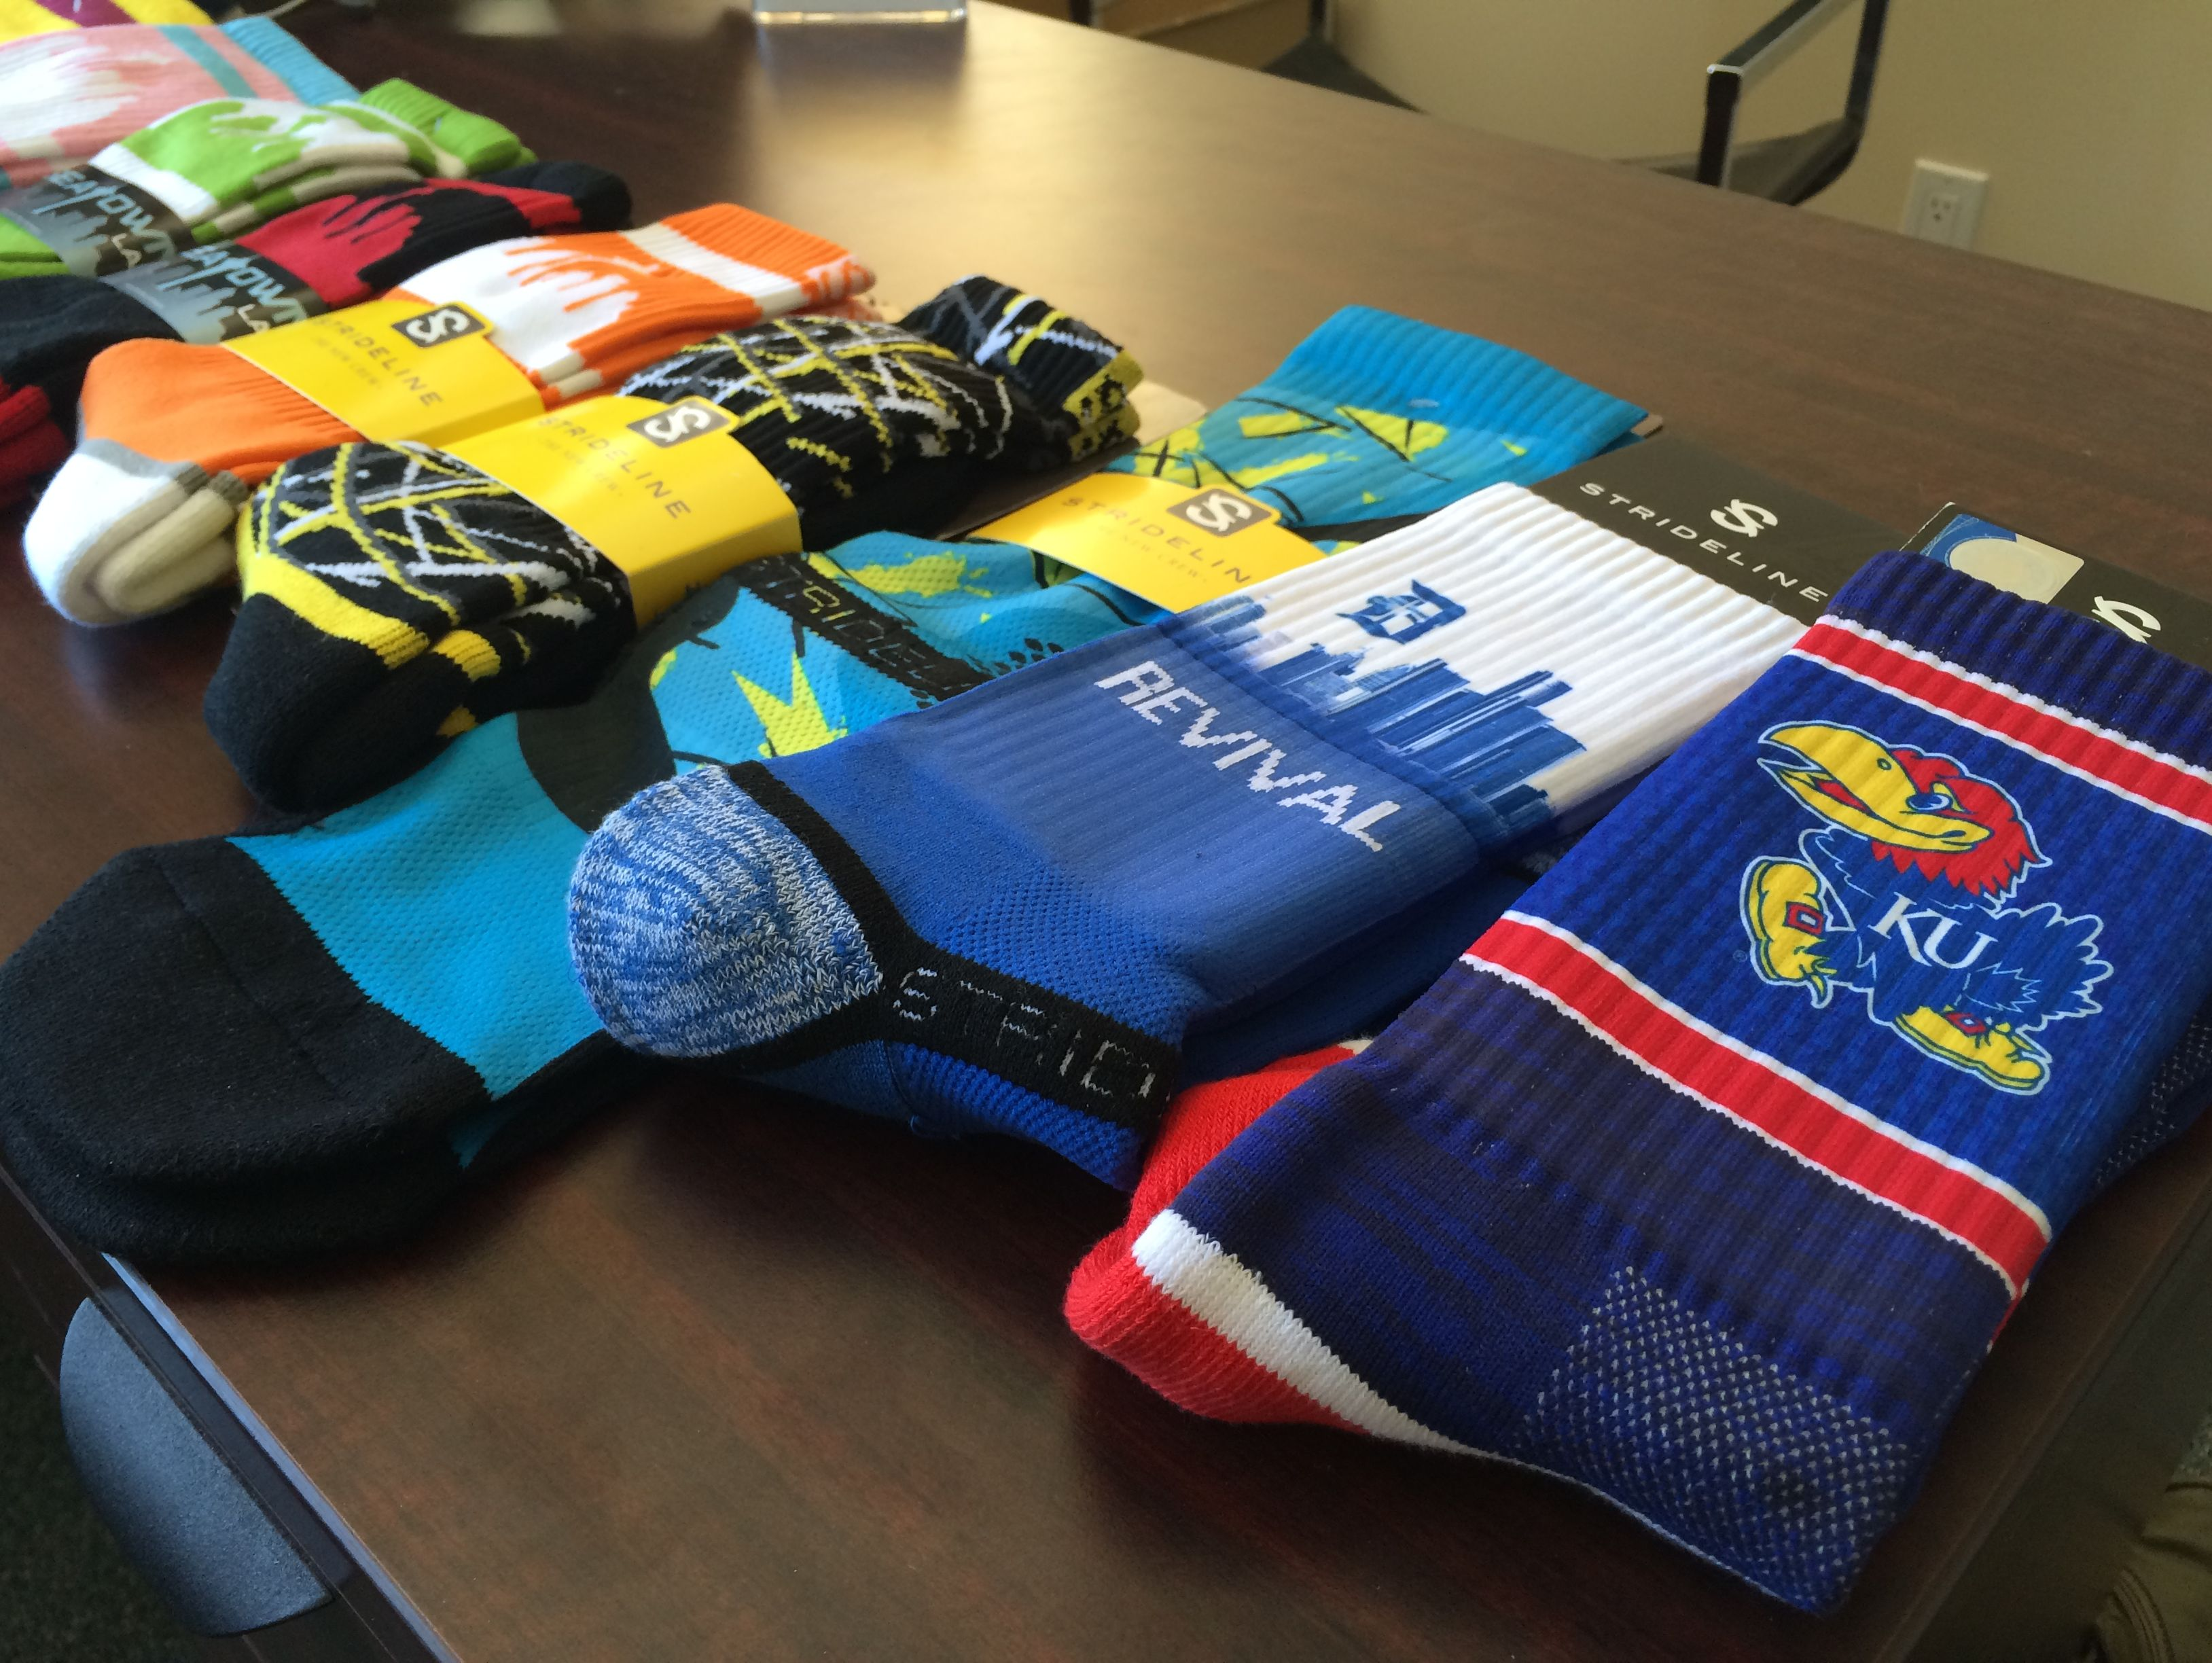 Srideline socks is expanding their line to include designs for 38 colleges in August.